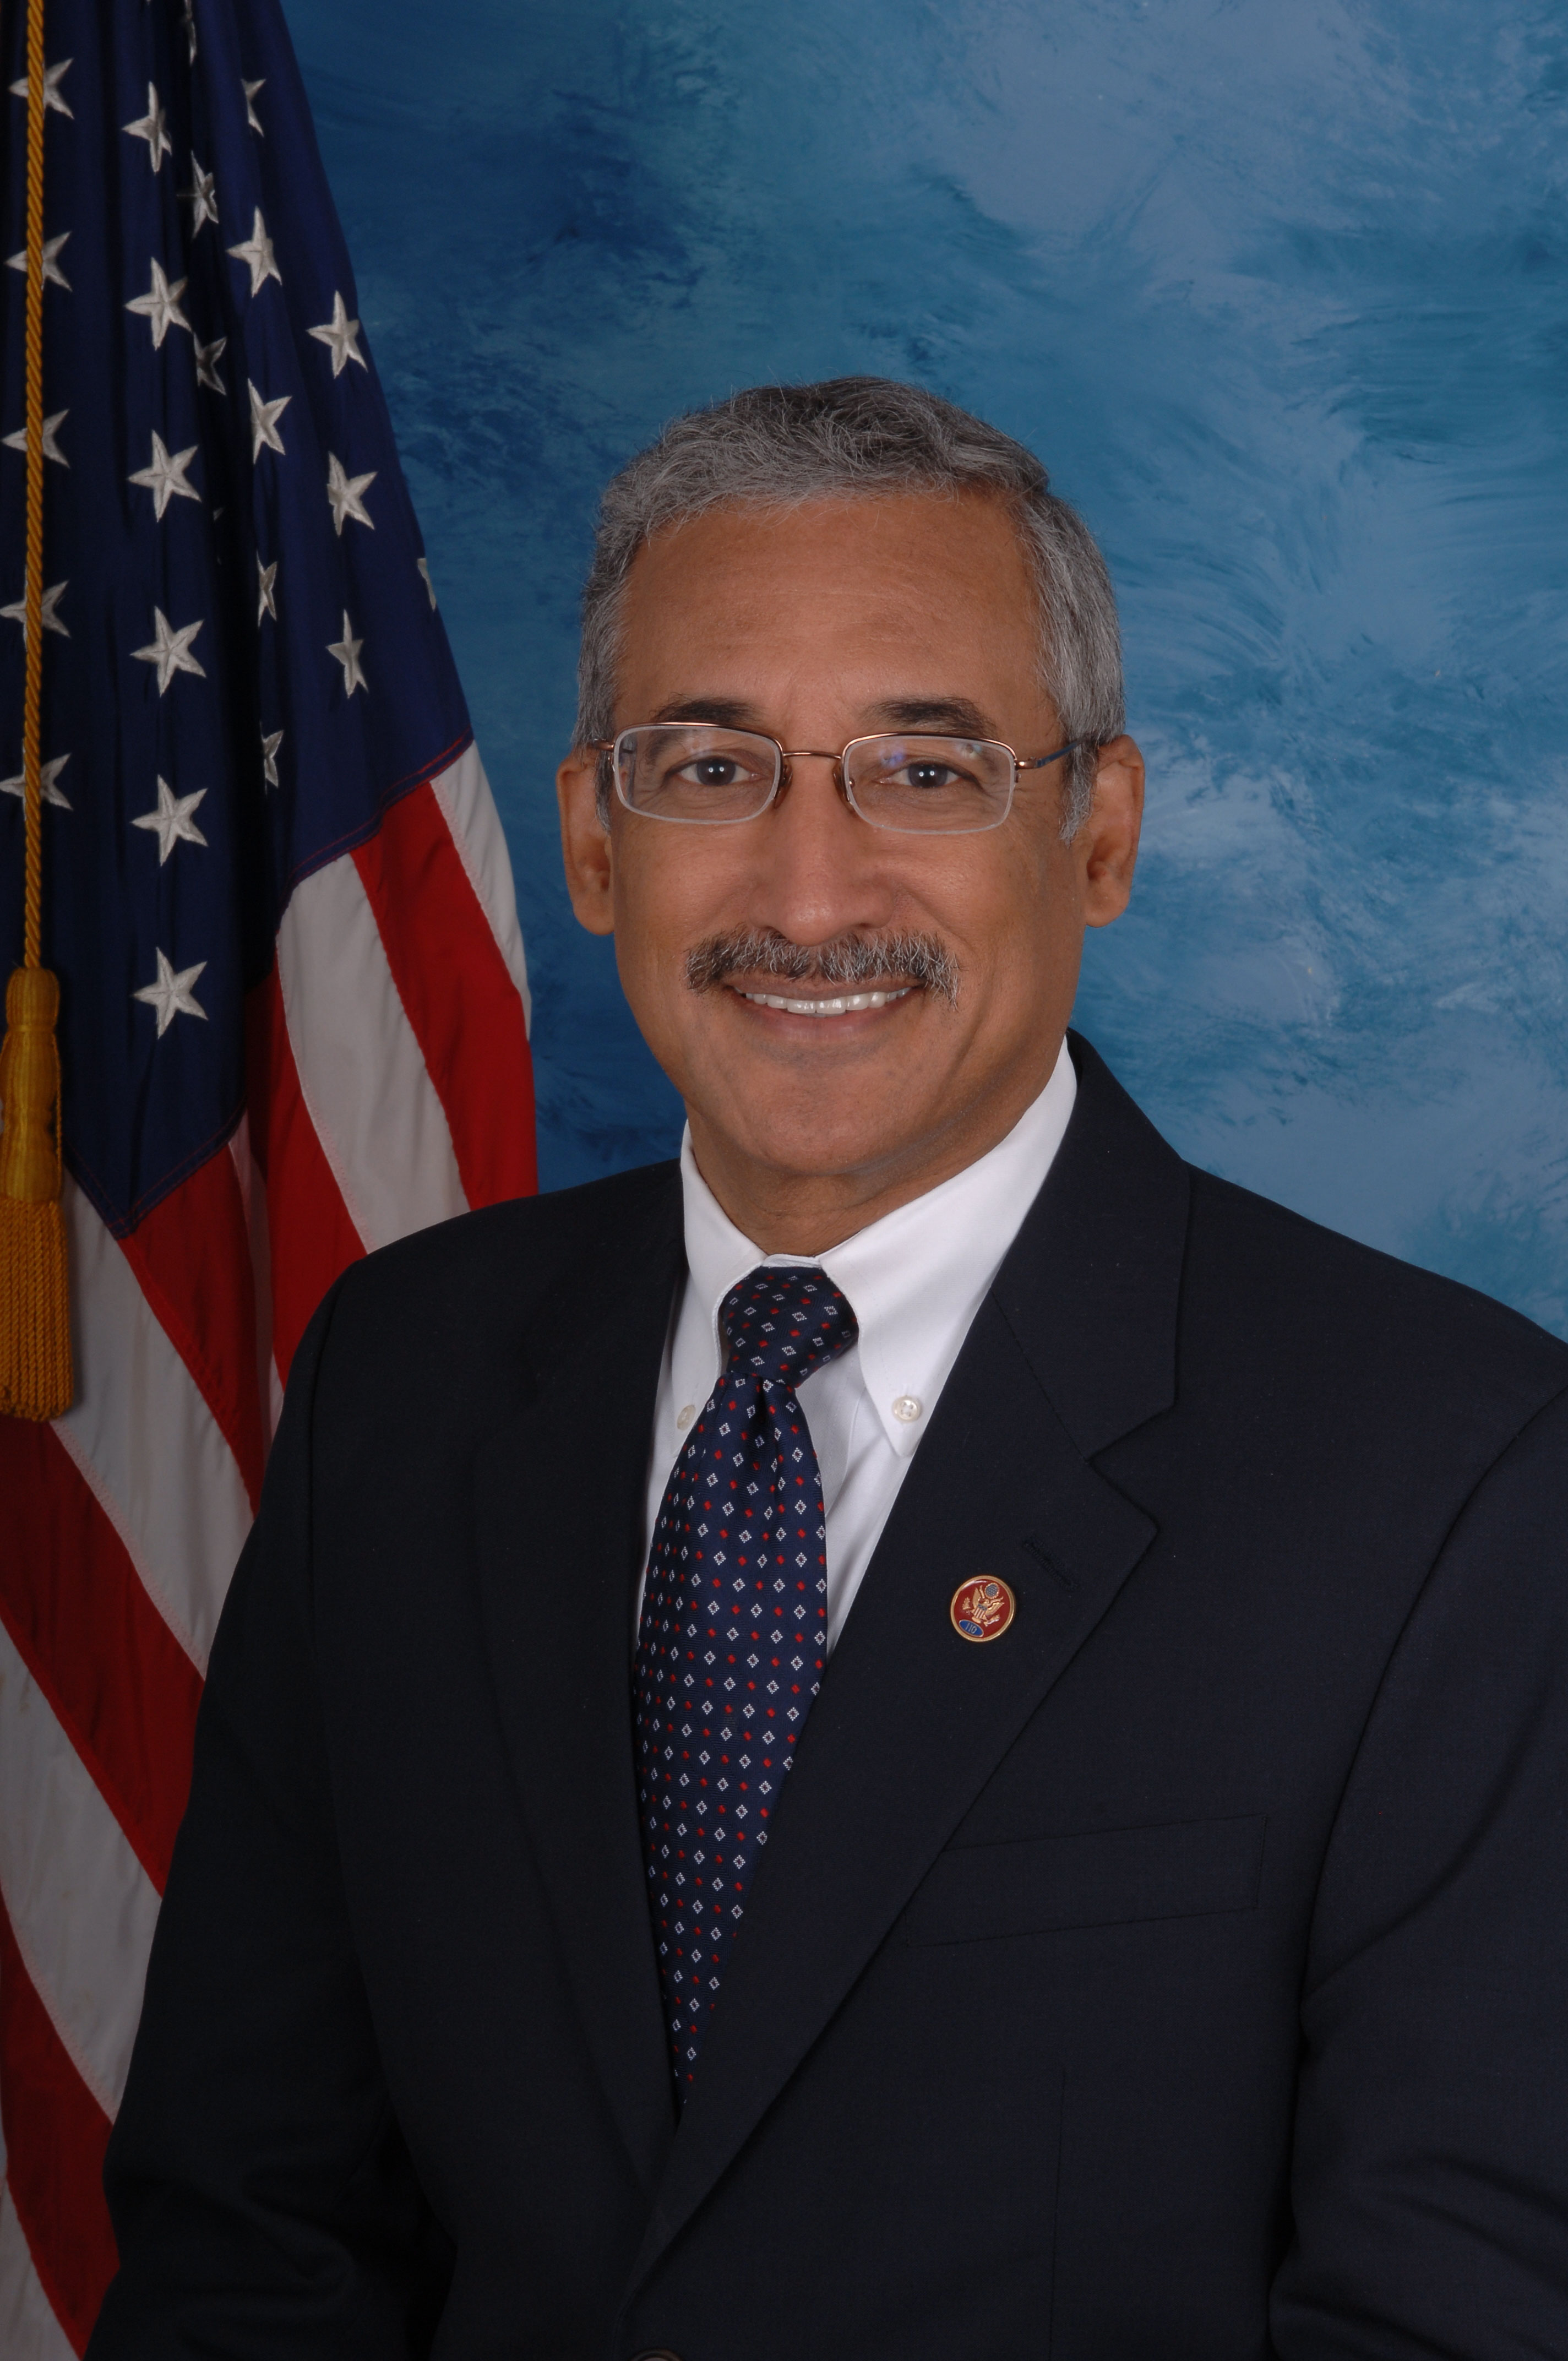 Official Portrait of Rep. Bobby Scott